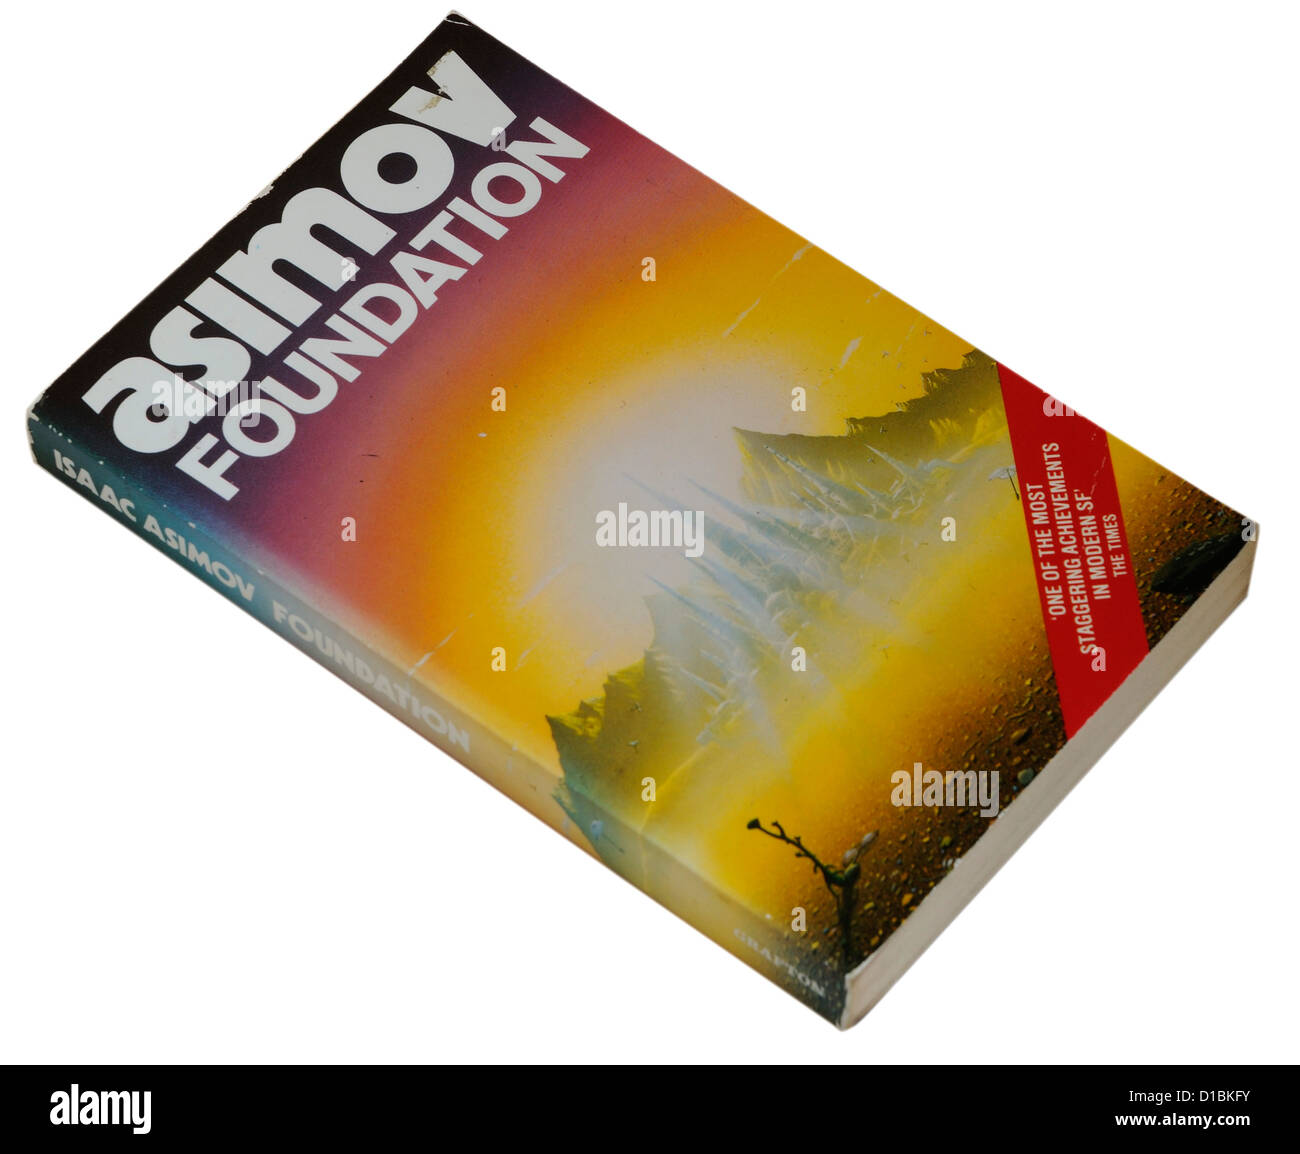 Foundation by Isaac Asimov - Stock Image